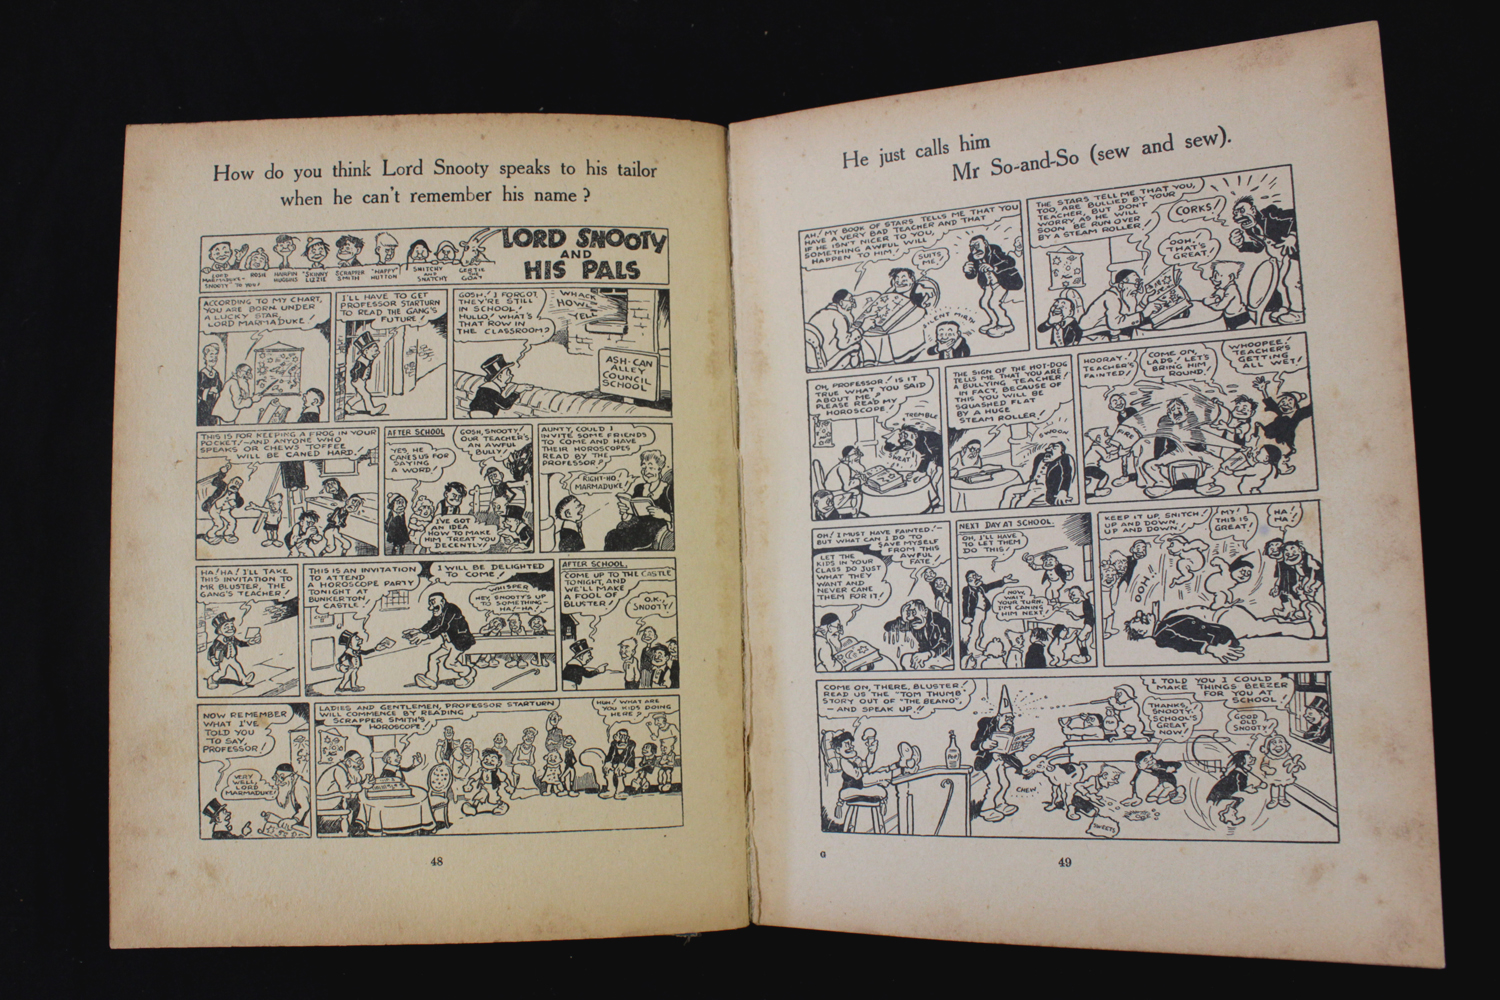 THE BEANO BOOK [No 1 Annual for 1940], London, Manchester and Dundee, D C Thomson & Co, [1939], 128p - Image 11 of 16